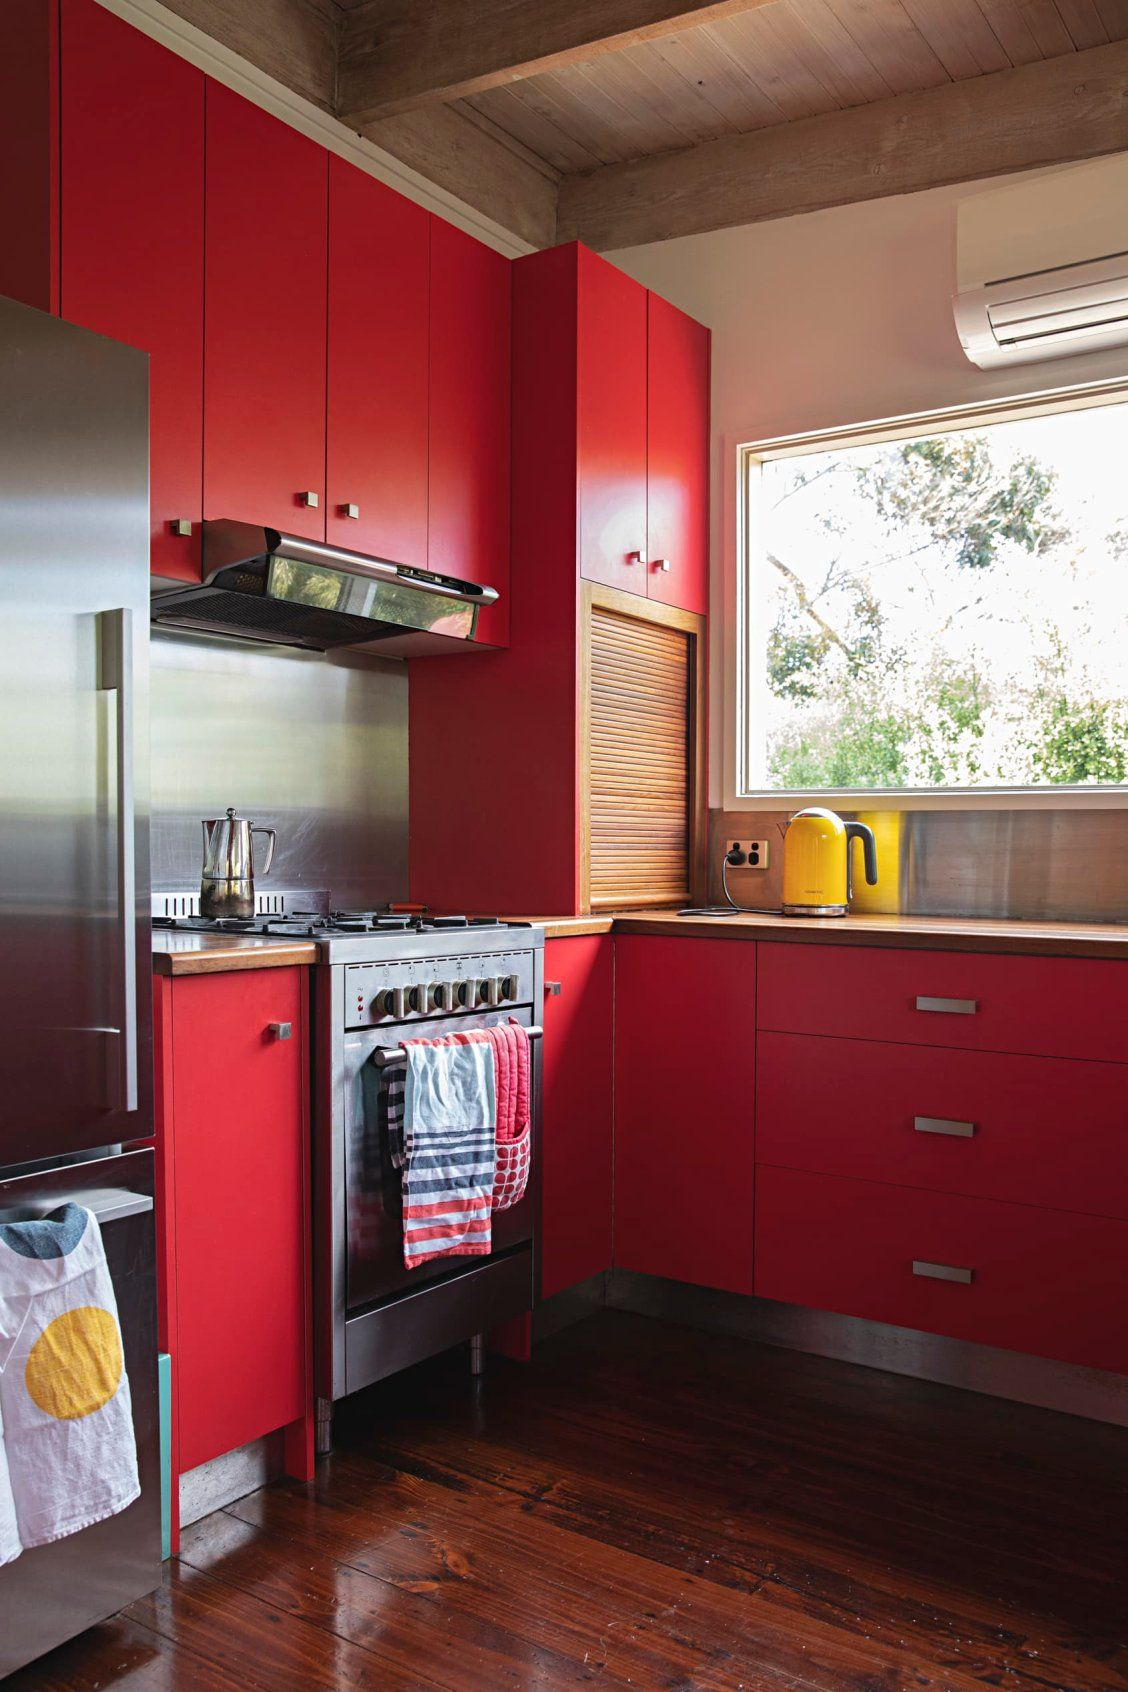 Bird Portraits Abstract Paintings And A Red Kitchen Make For An Incredibly Colorful Australian Home In 2020 Red Kitchen Cabinets Red Kitchen Rustic Kitchen Cabinets